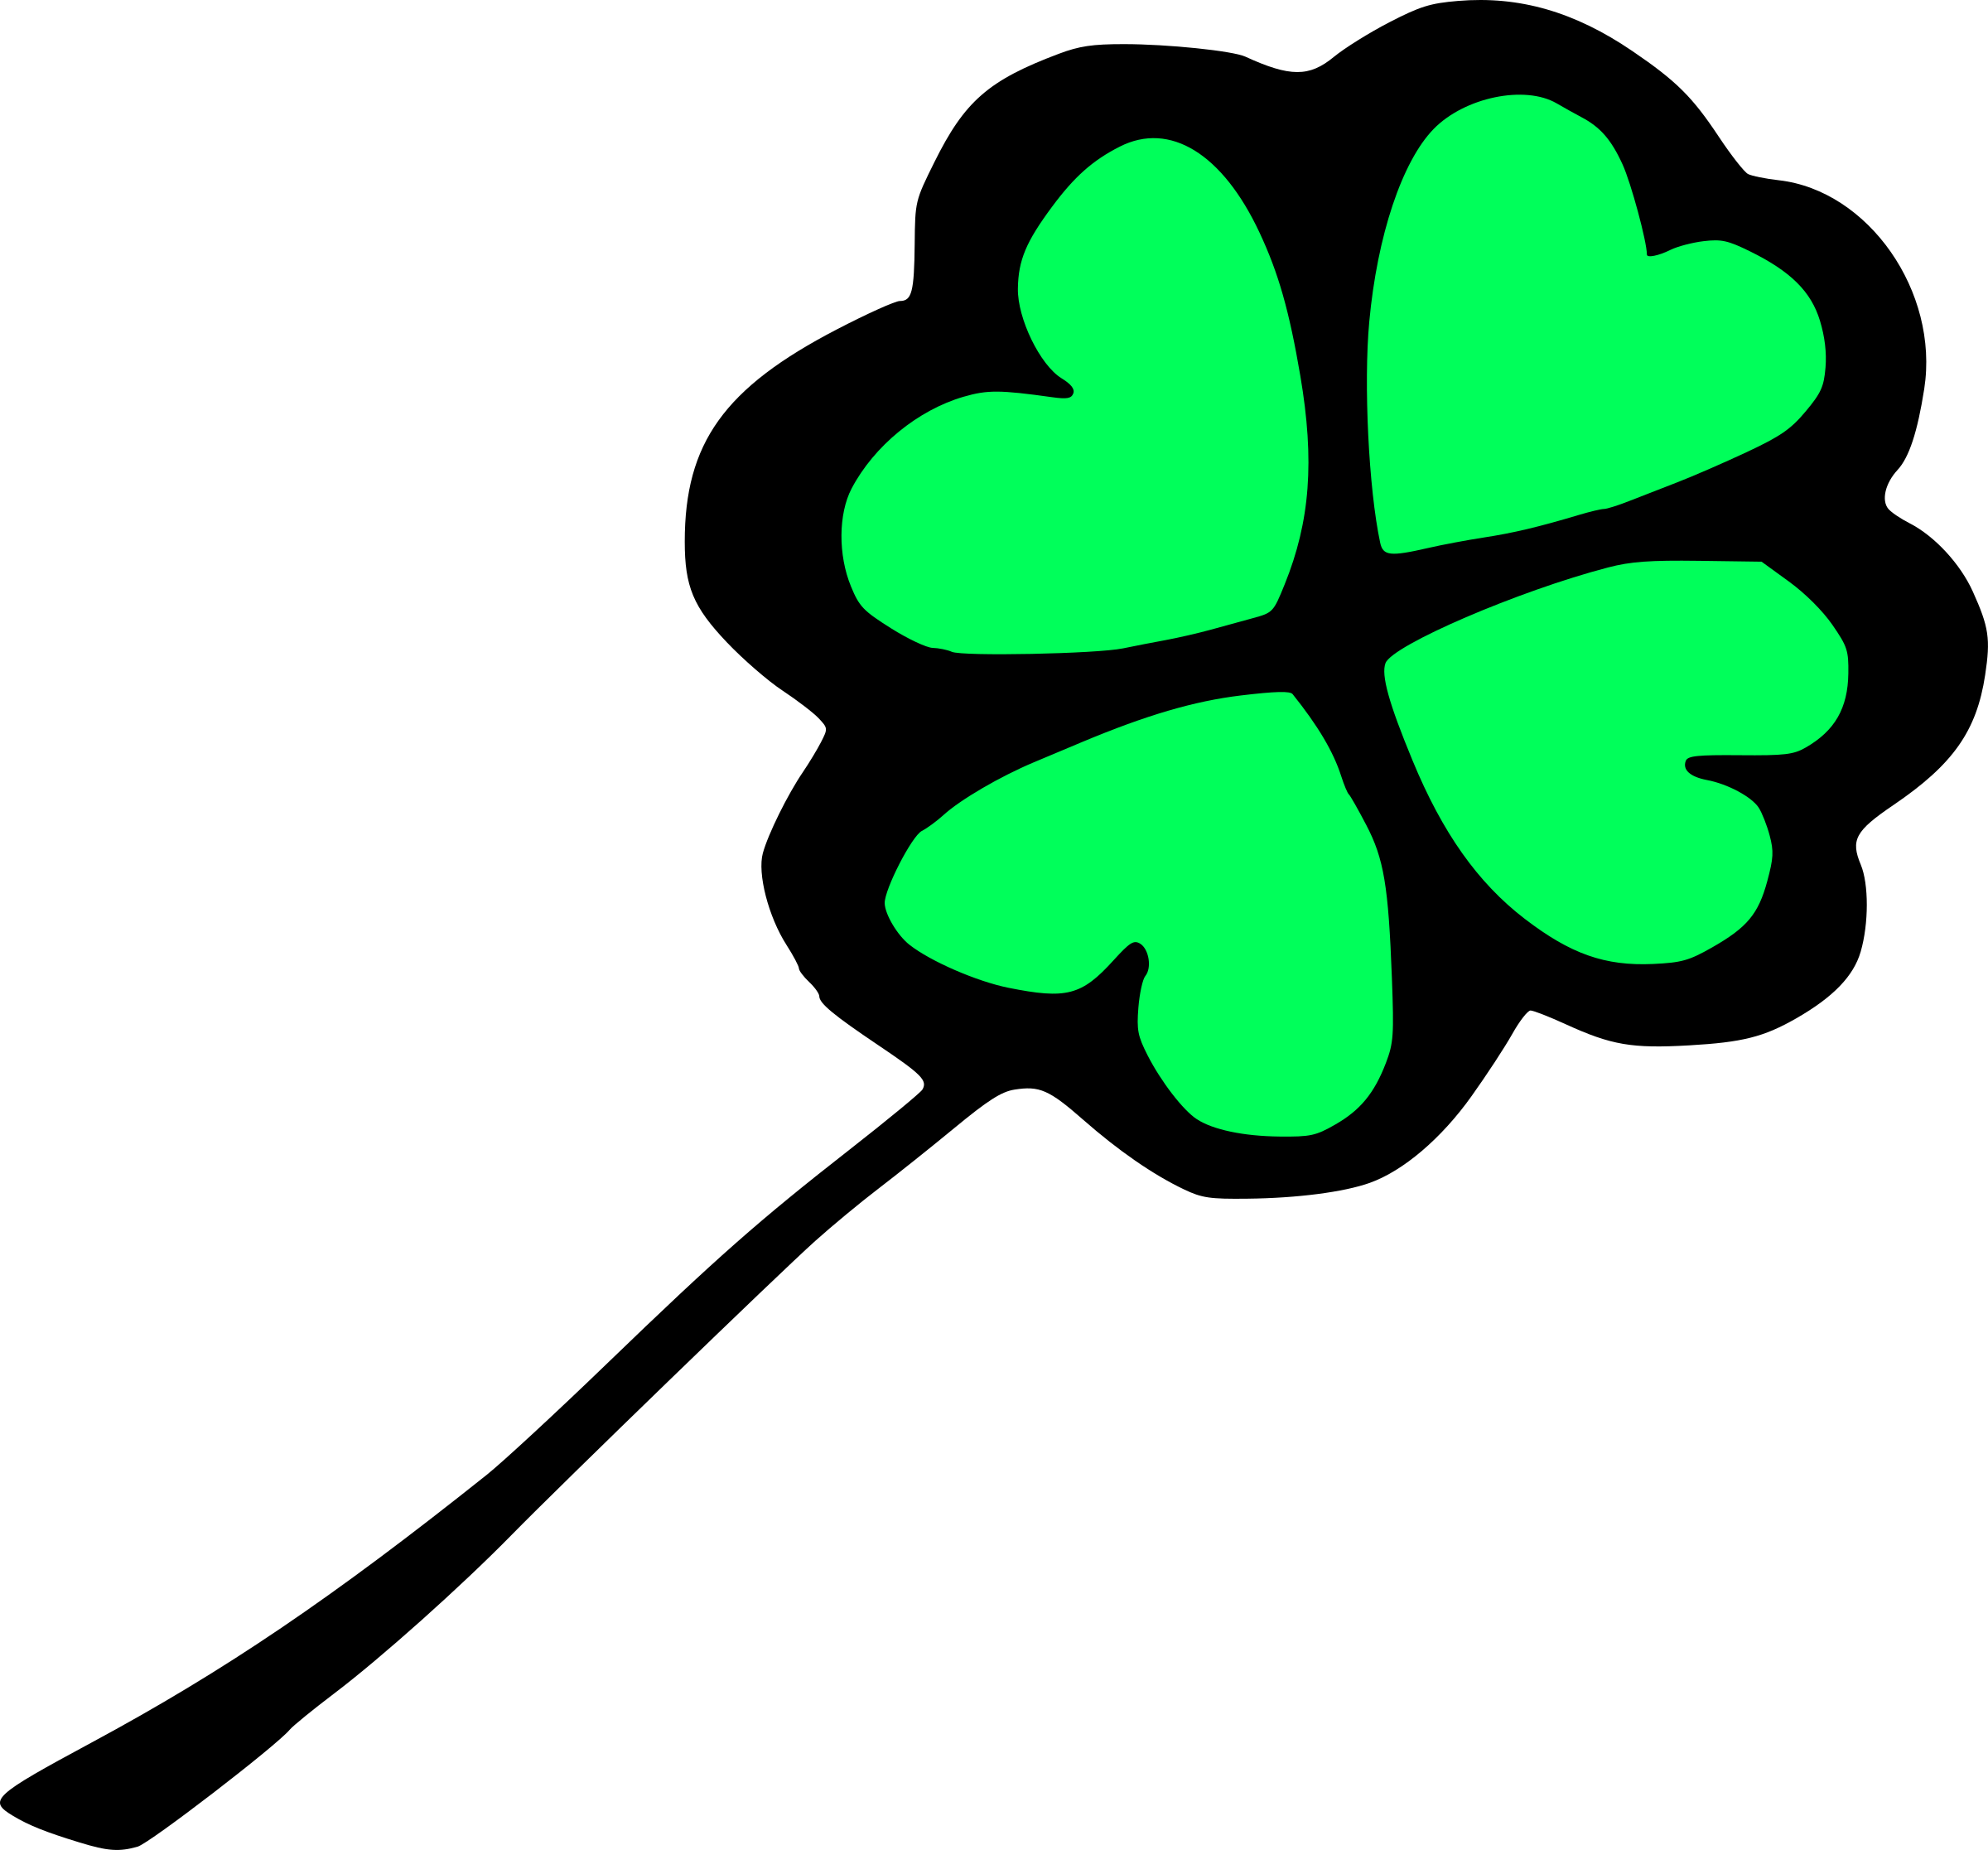 Four leaf clover by liftarn